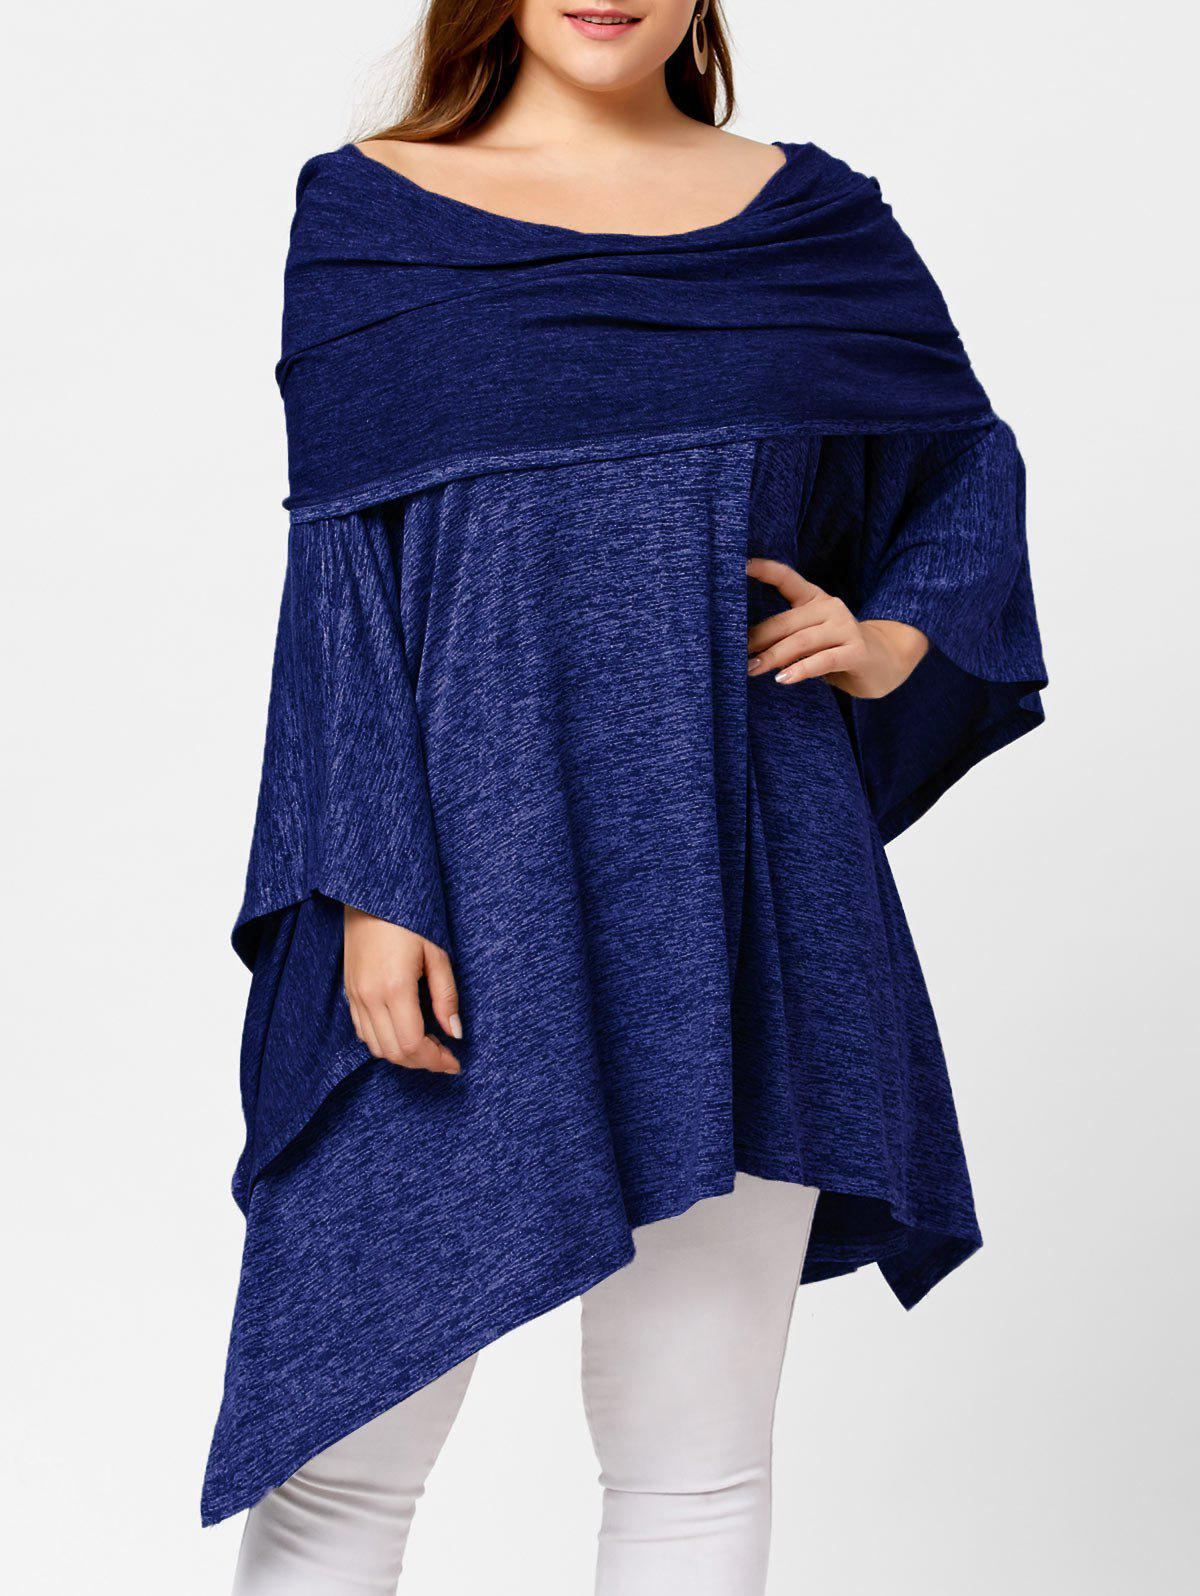 Off Shoulder Plus Size Asymmetric Tunic TopWOMEN<br><br>Size: ONE SIZE; Color: DEEP BLUE; Material: Cotton Blend,Spandex; Shirt Length: Long; Sleeve Length: Full; Style: Fashion; Pattern Style: Solid; Season: Fall,Spring; Weight: 0.6290kg; Package Contents: 1 x Top;